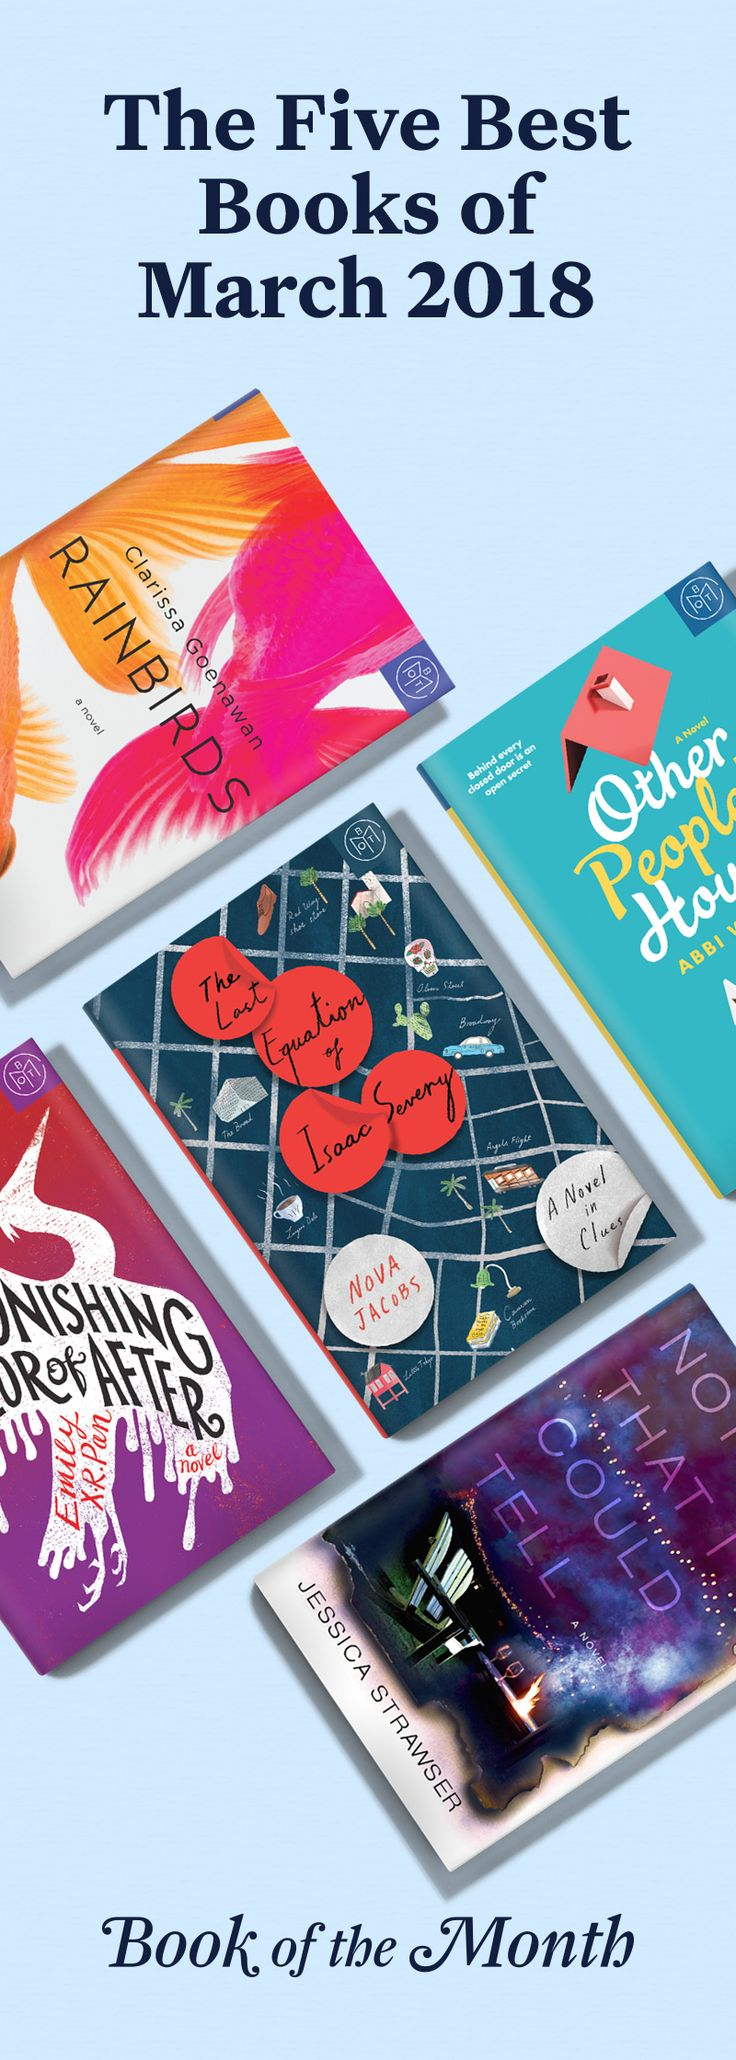 The five best books of March 2018. Head to bookofthemonth.com and start reading for just $14.99 per book.